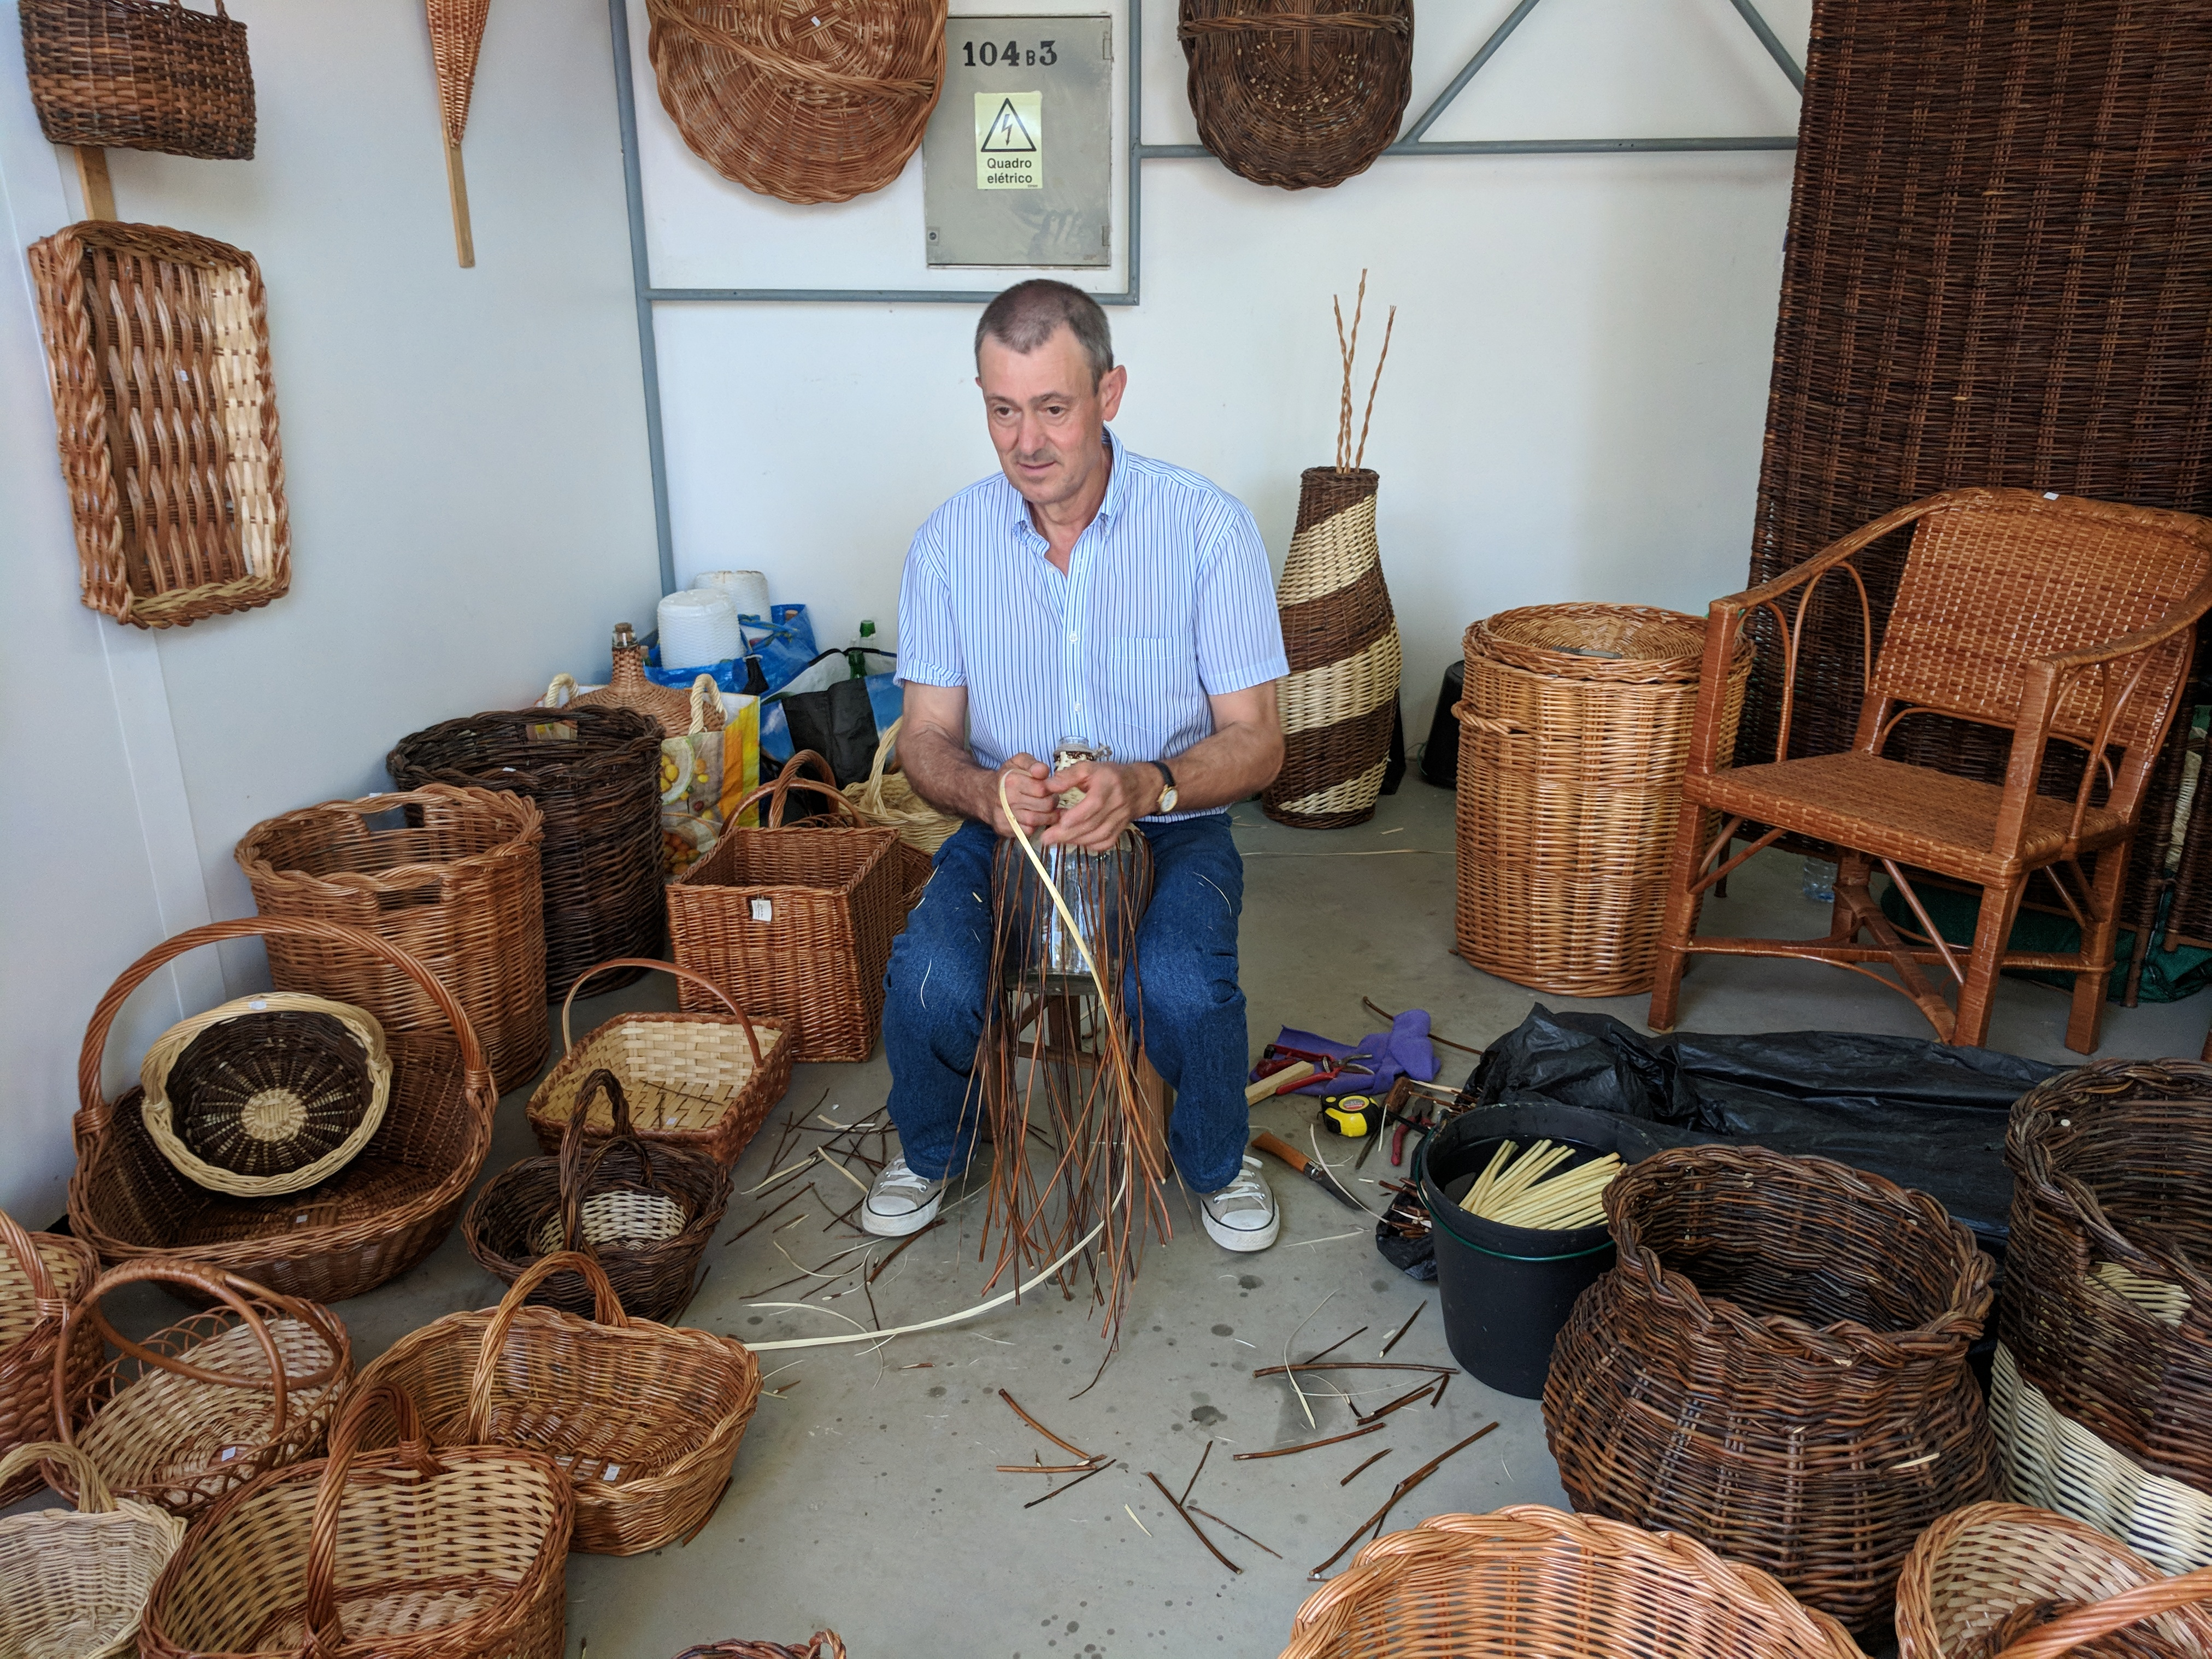 Portugal - Algarve / Fatacil (fair) in Lagoa: basket maker